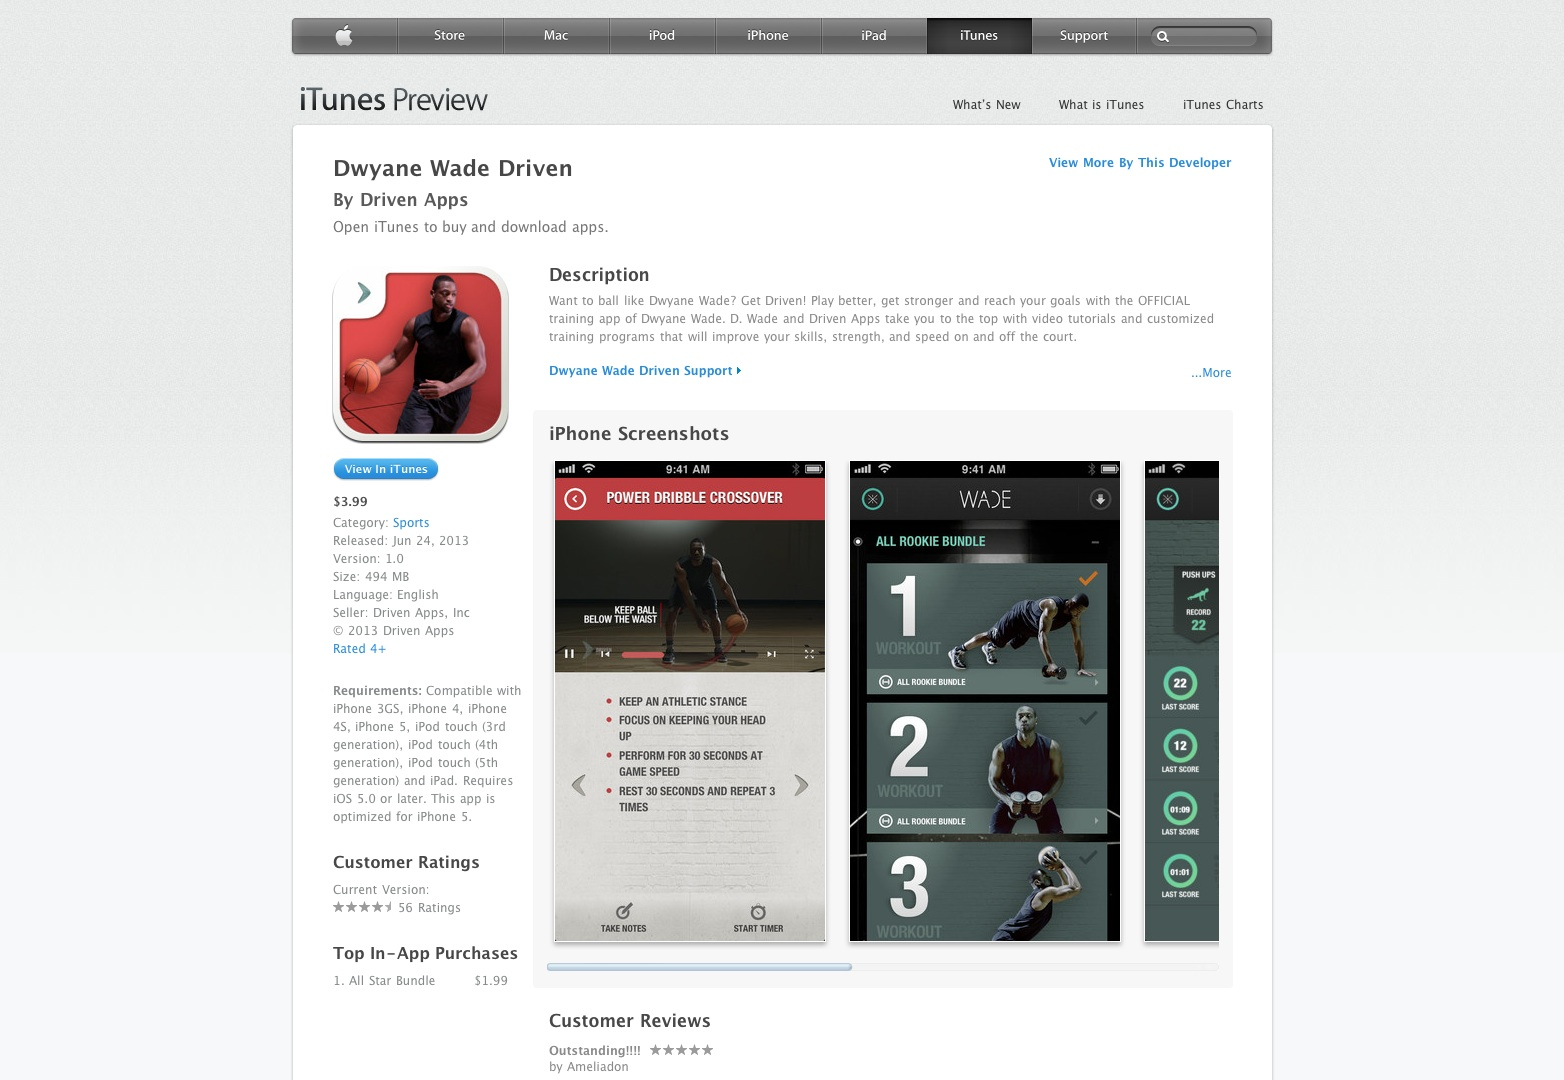 Dwyane Wade Driven for iPhone 3GS, iPhone 4, iPhone 4S, iPhone 5, iPod touch (3rd generation), iPod touch (4th generation), iPod touch (5th generation) and iPad on the iTunes App Store